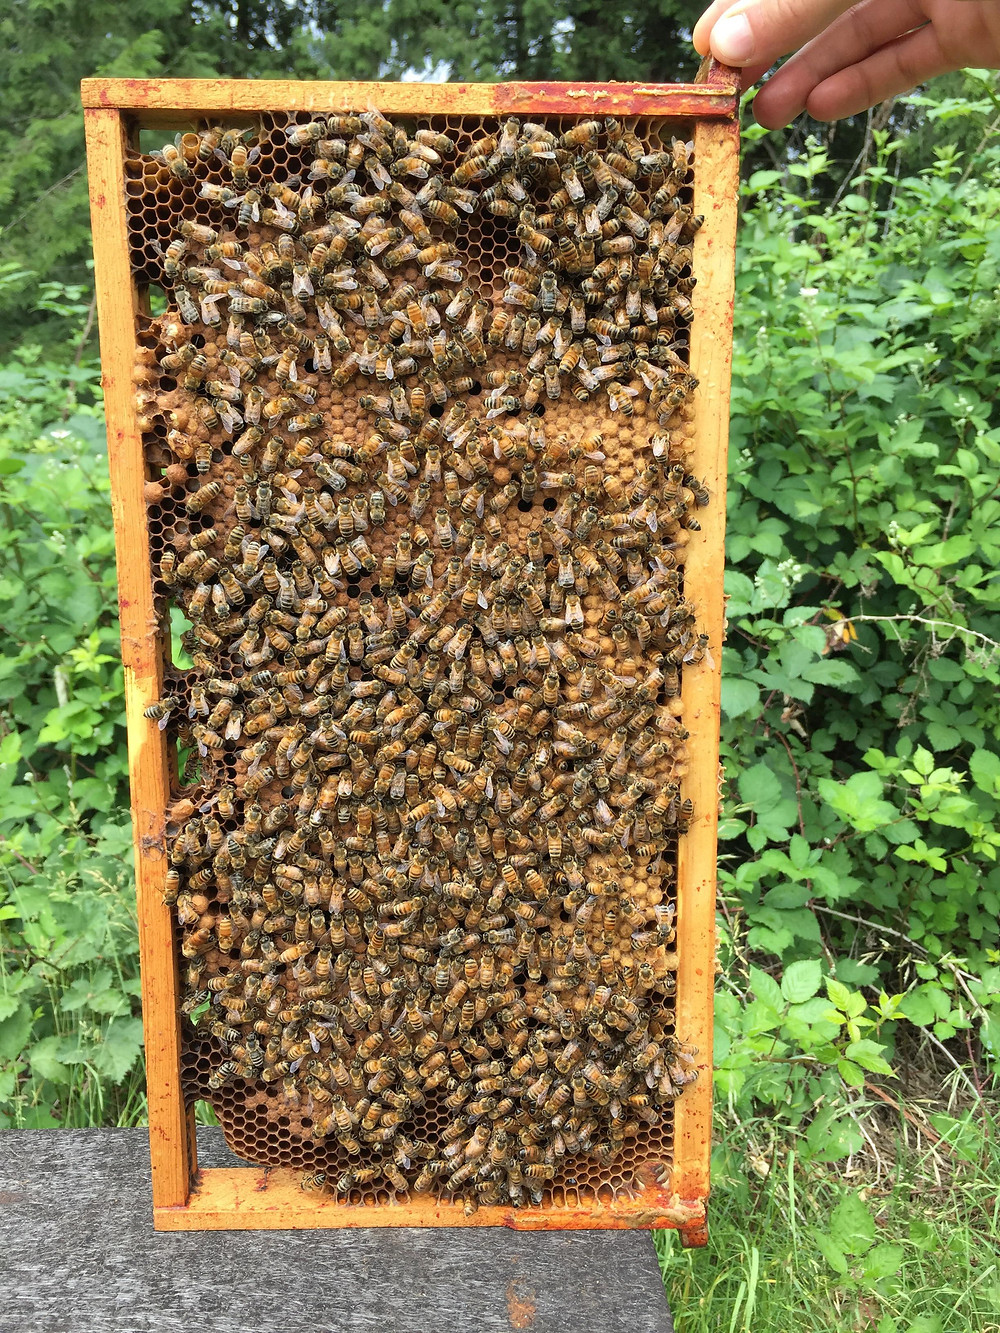 urban beekeeping, honey bees, city bees, hive, honey bee swarm, beekeeping, beekeepter, local honey, honey bee history